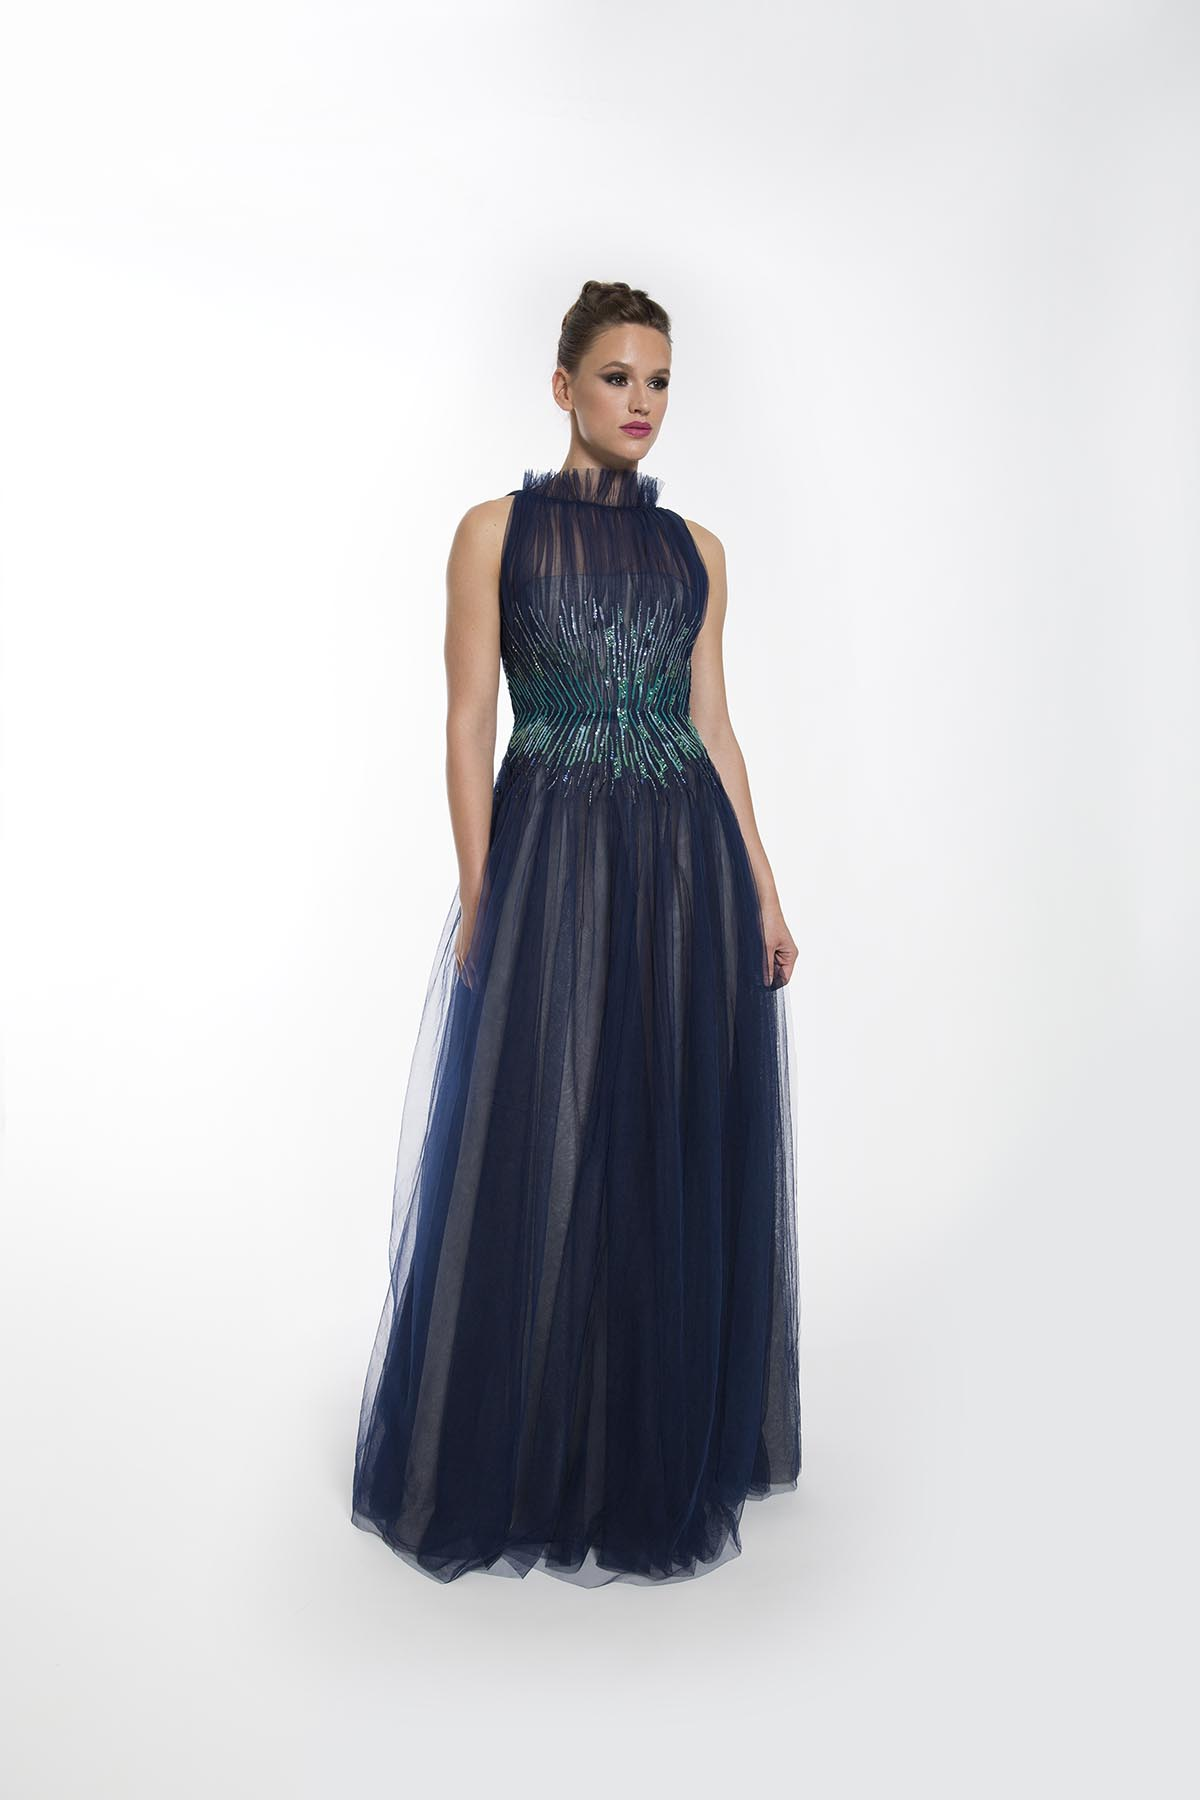 NAVY ICE GOWN